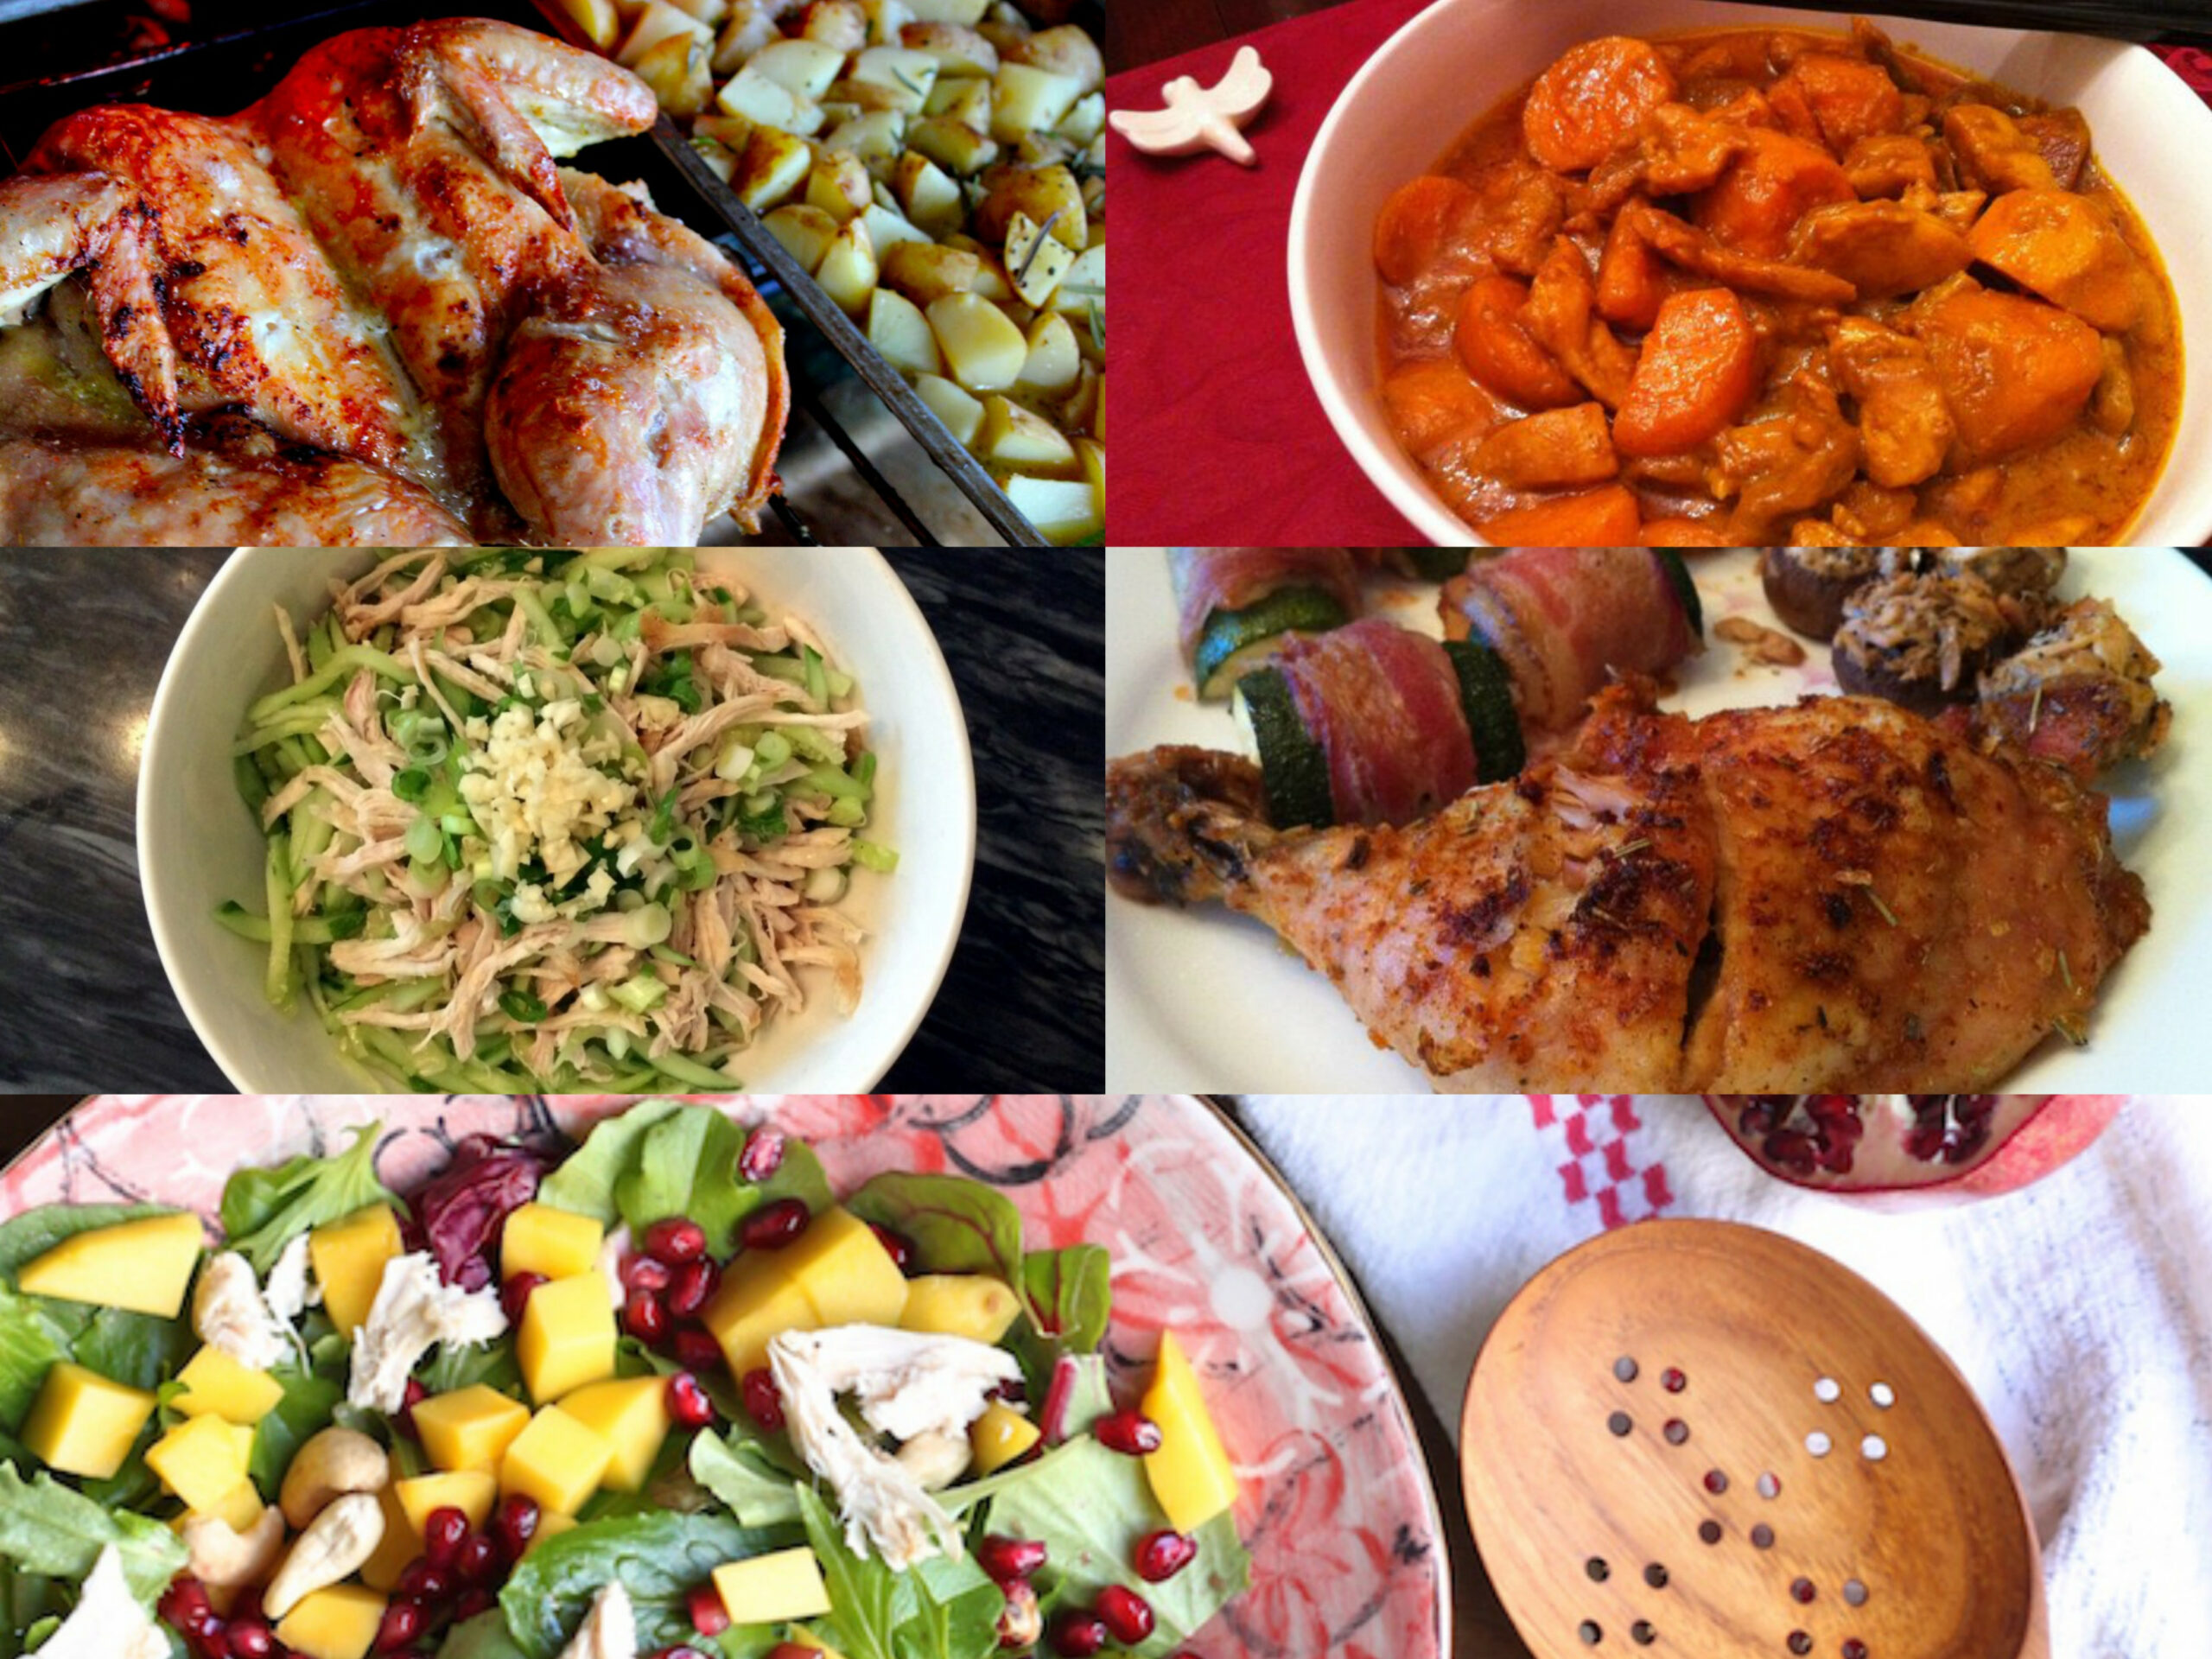 Whole30 Chicken Recipes - Oh Snap! Let's Eat! - Whole30 Recipes Chicken